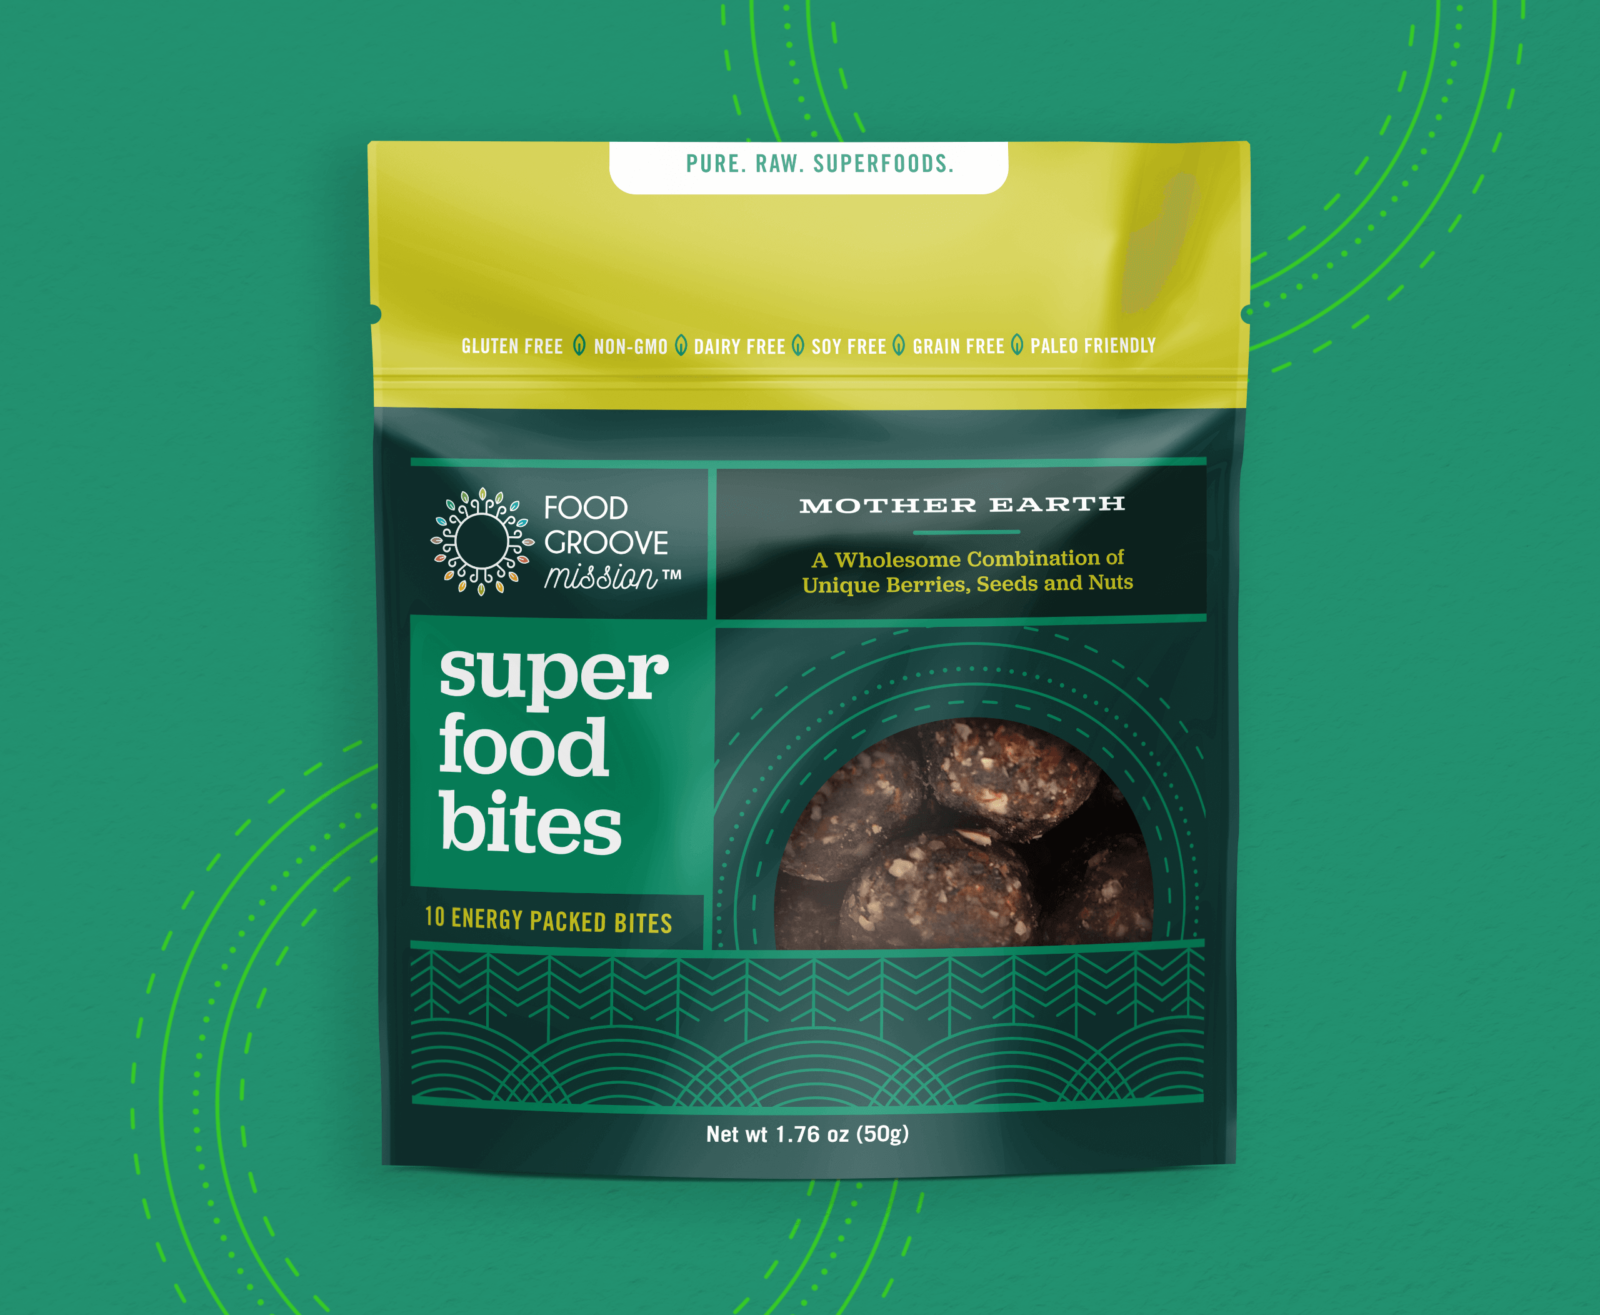 Food Groove Bites Packaging Green